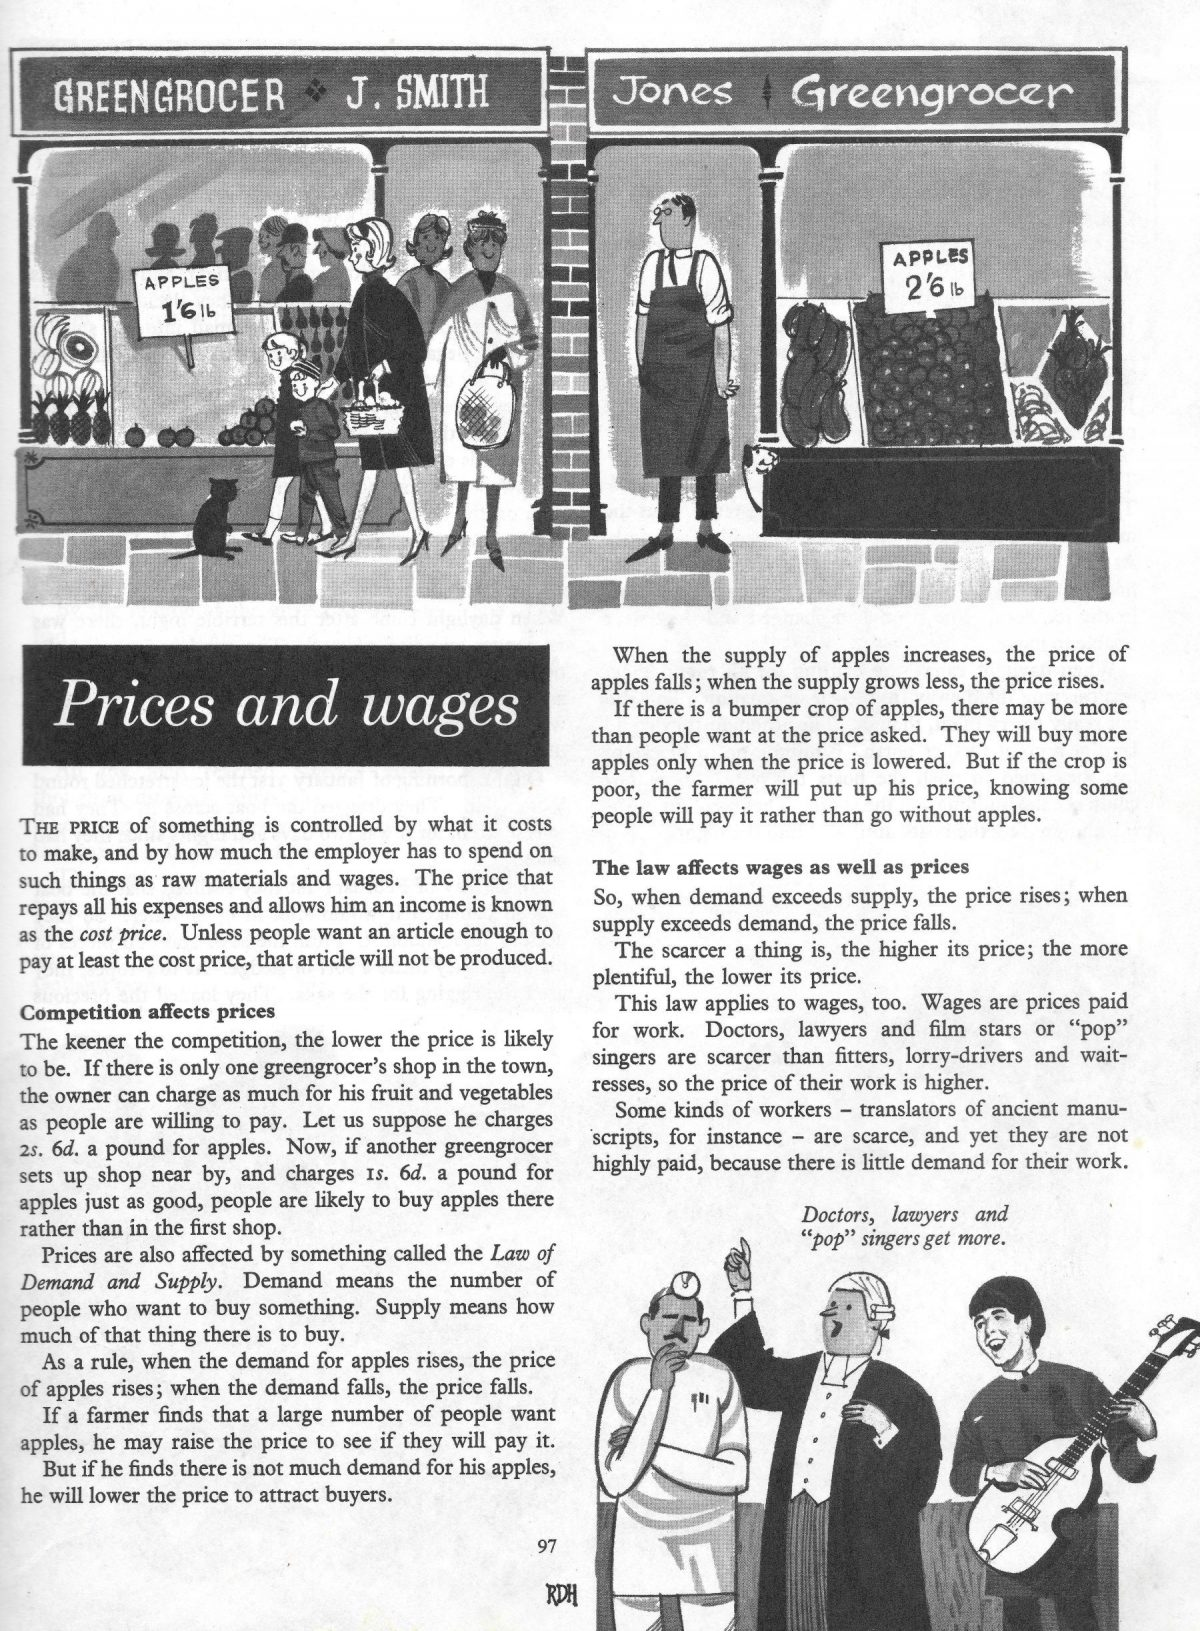 Finding Out Treasury, books, illustration, education, 1960s